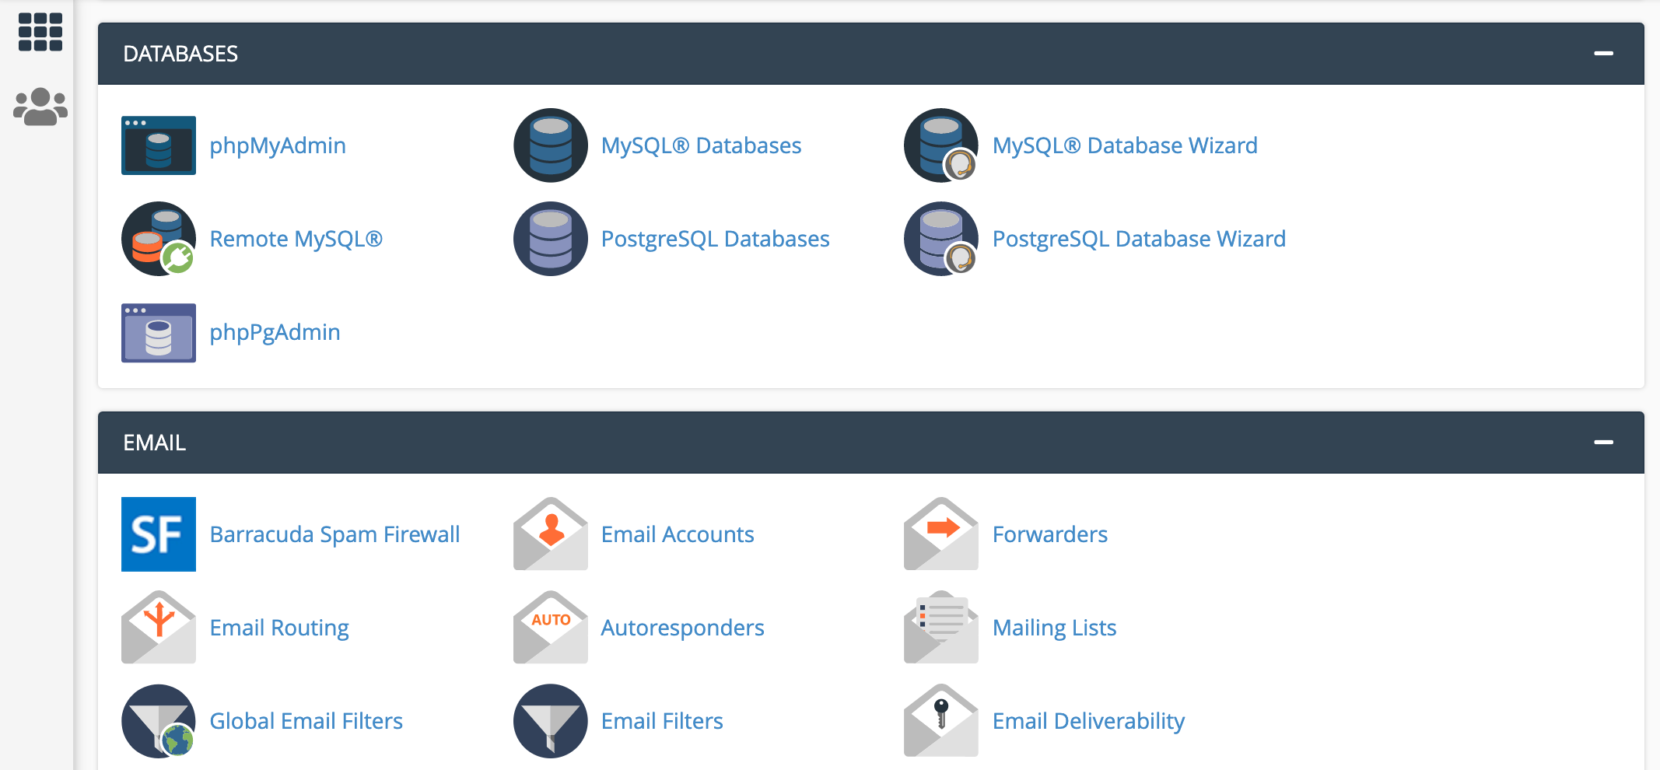 The Databases section of the cPanel dashboard.